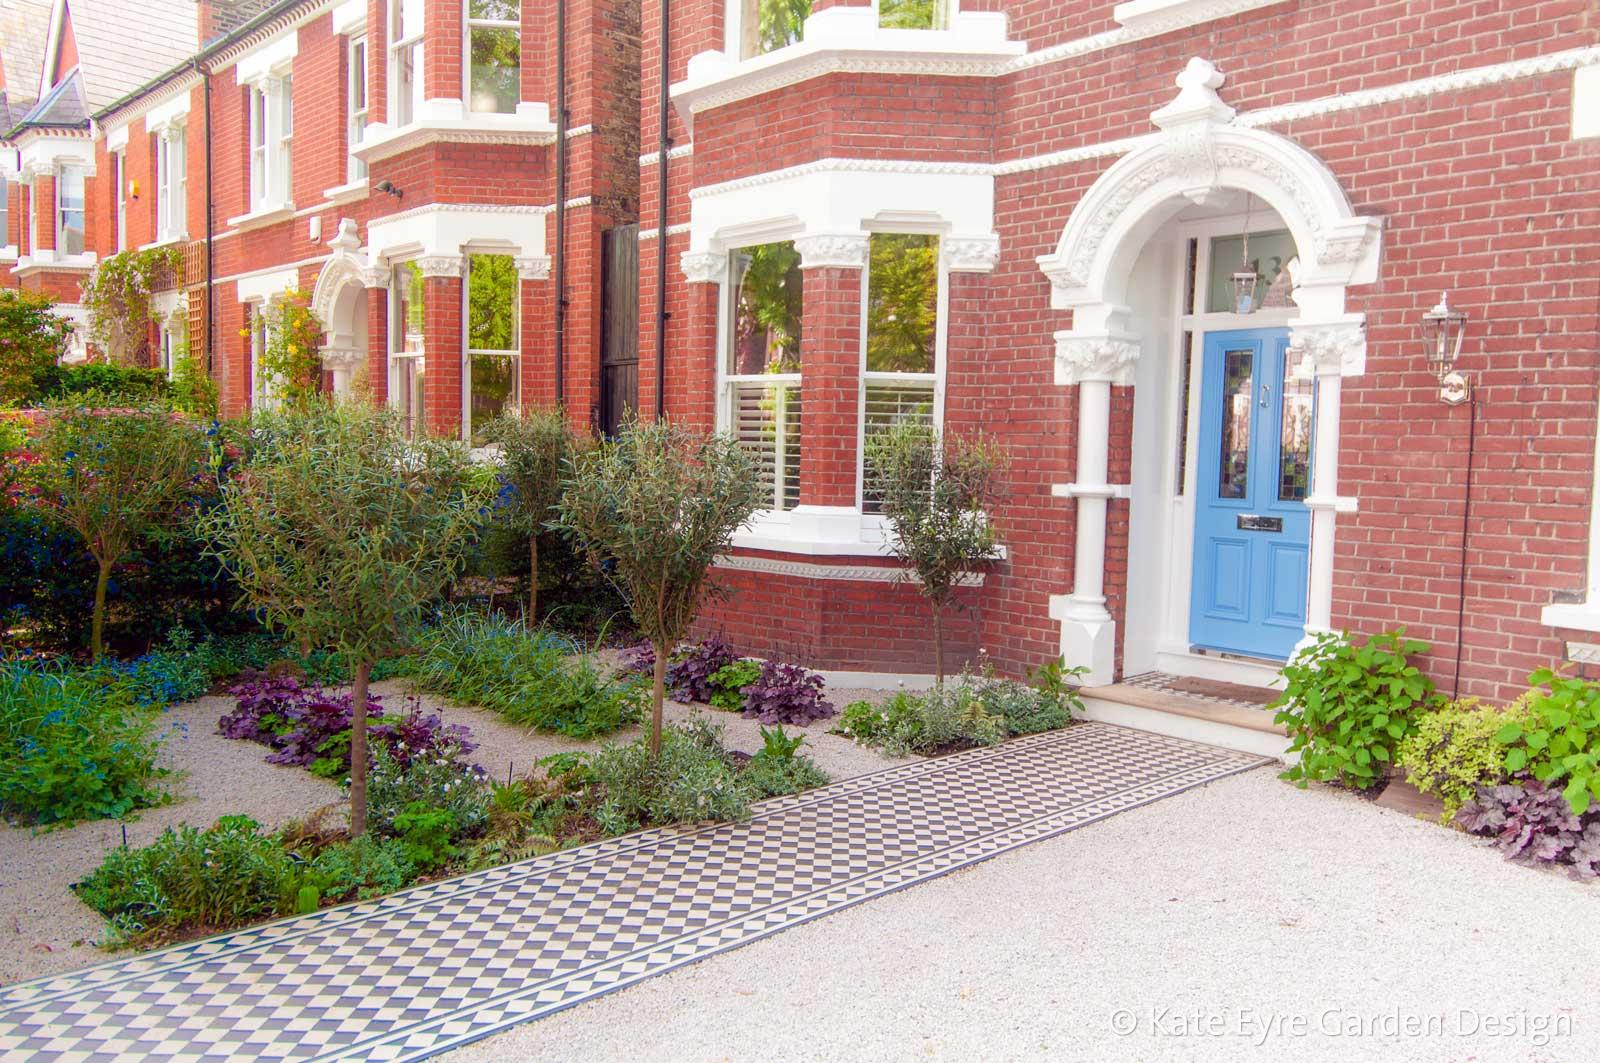 Front Garden Design in Rosendale Road, London, 3